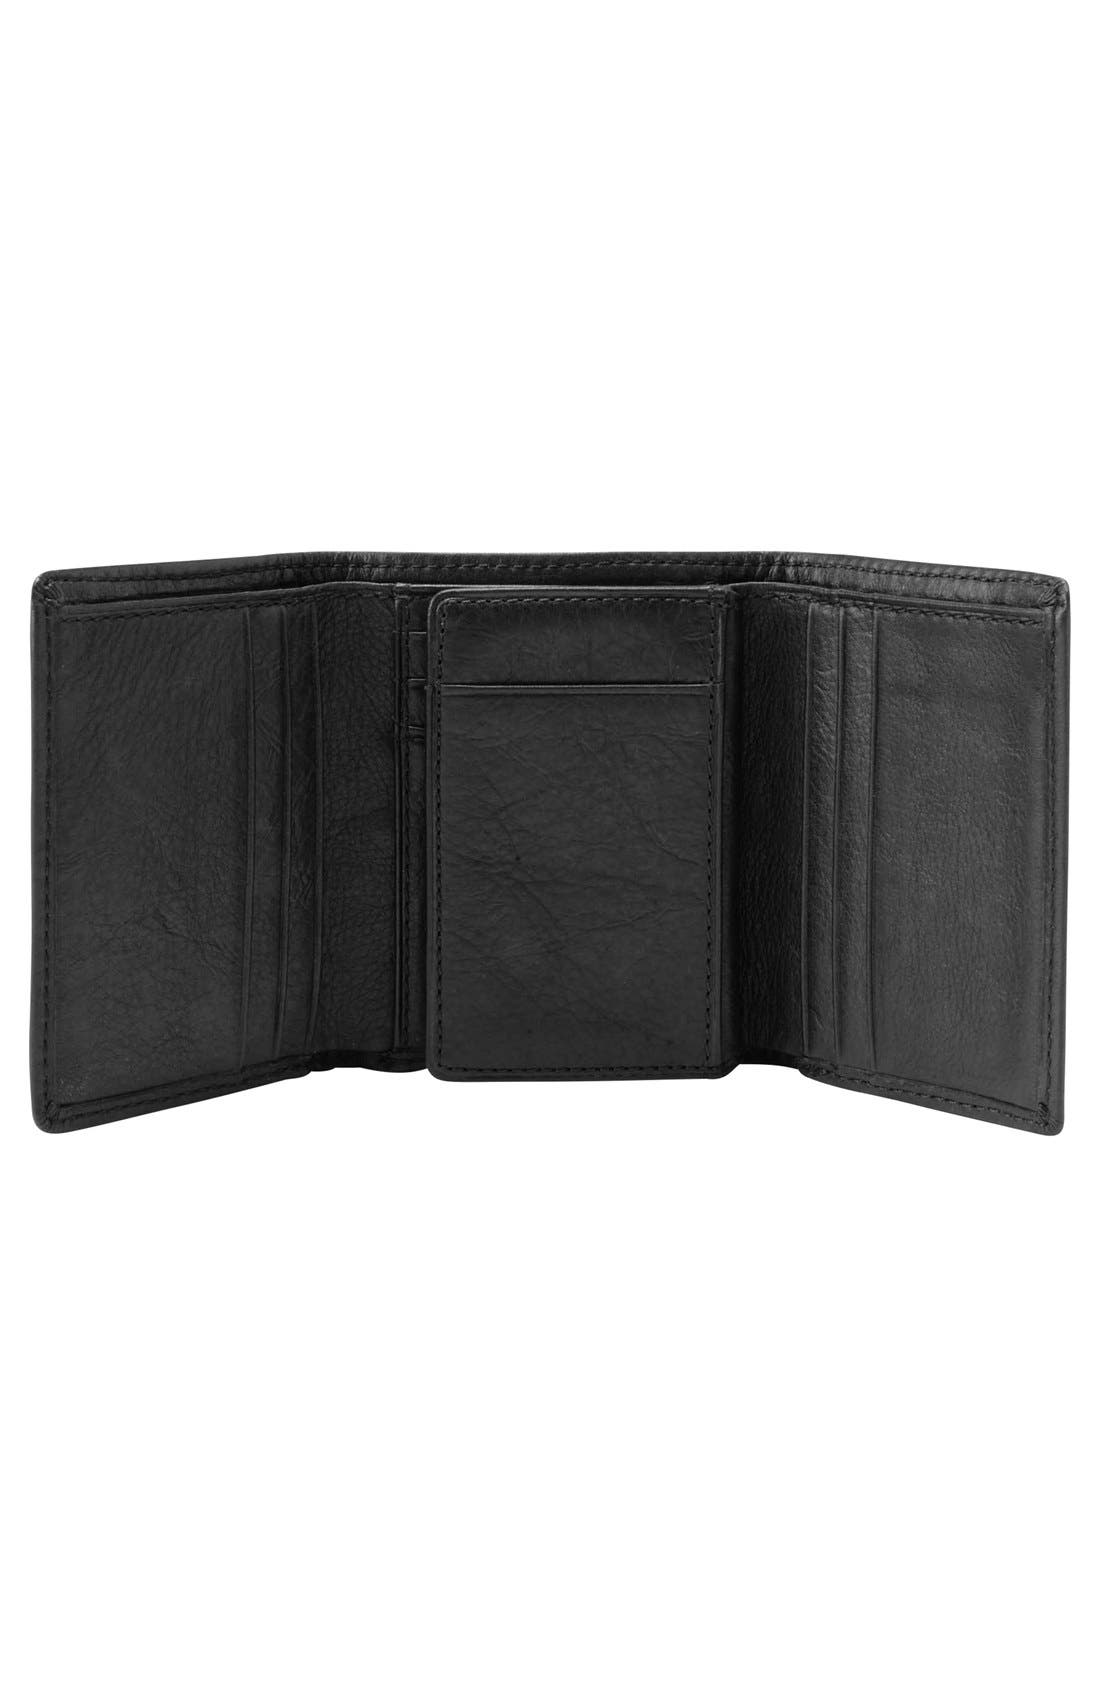 FOSSIL,                             'Ingram' Leather Trifold Wallet,                             Alternate thumbnail 2, color,                             001